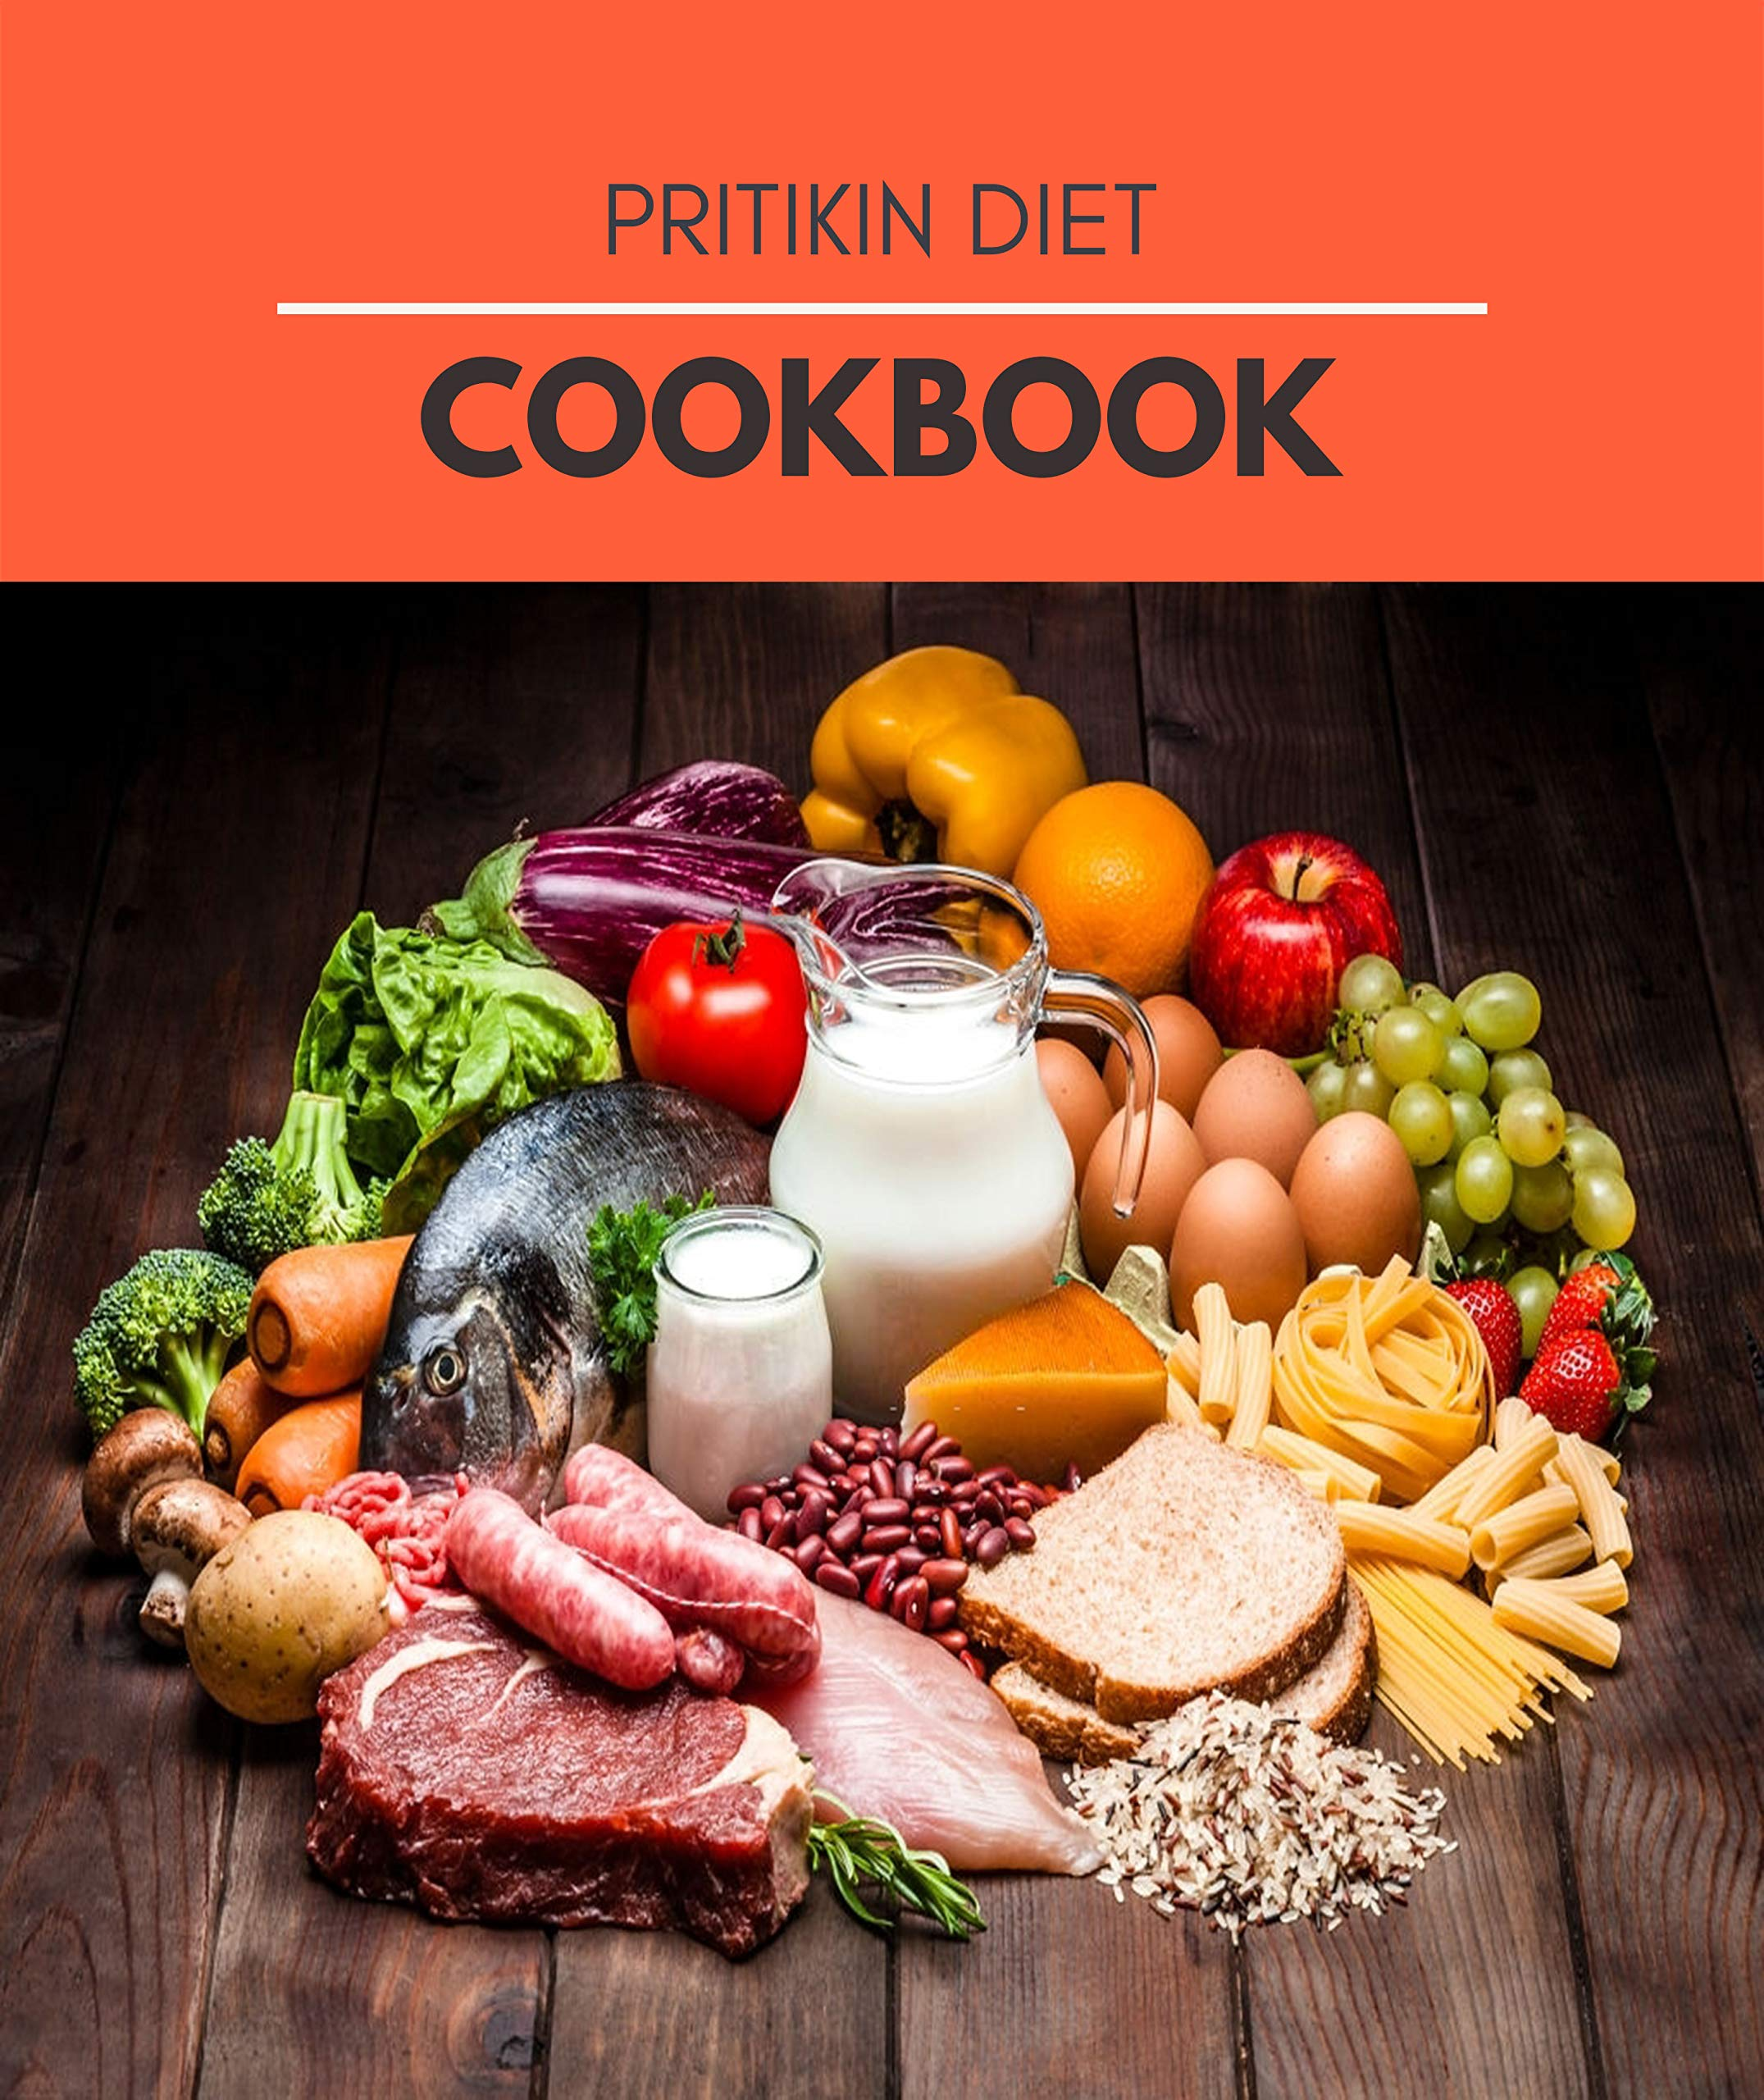 Pritikin Diet Cookbook: Easy, Flavorful Recipes For Lifelong Health | Weight Reduction To Your Satisfaction